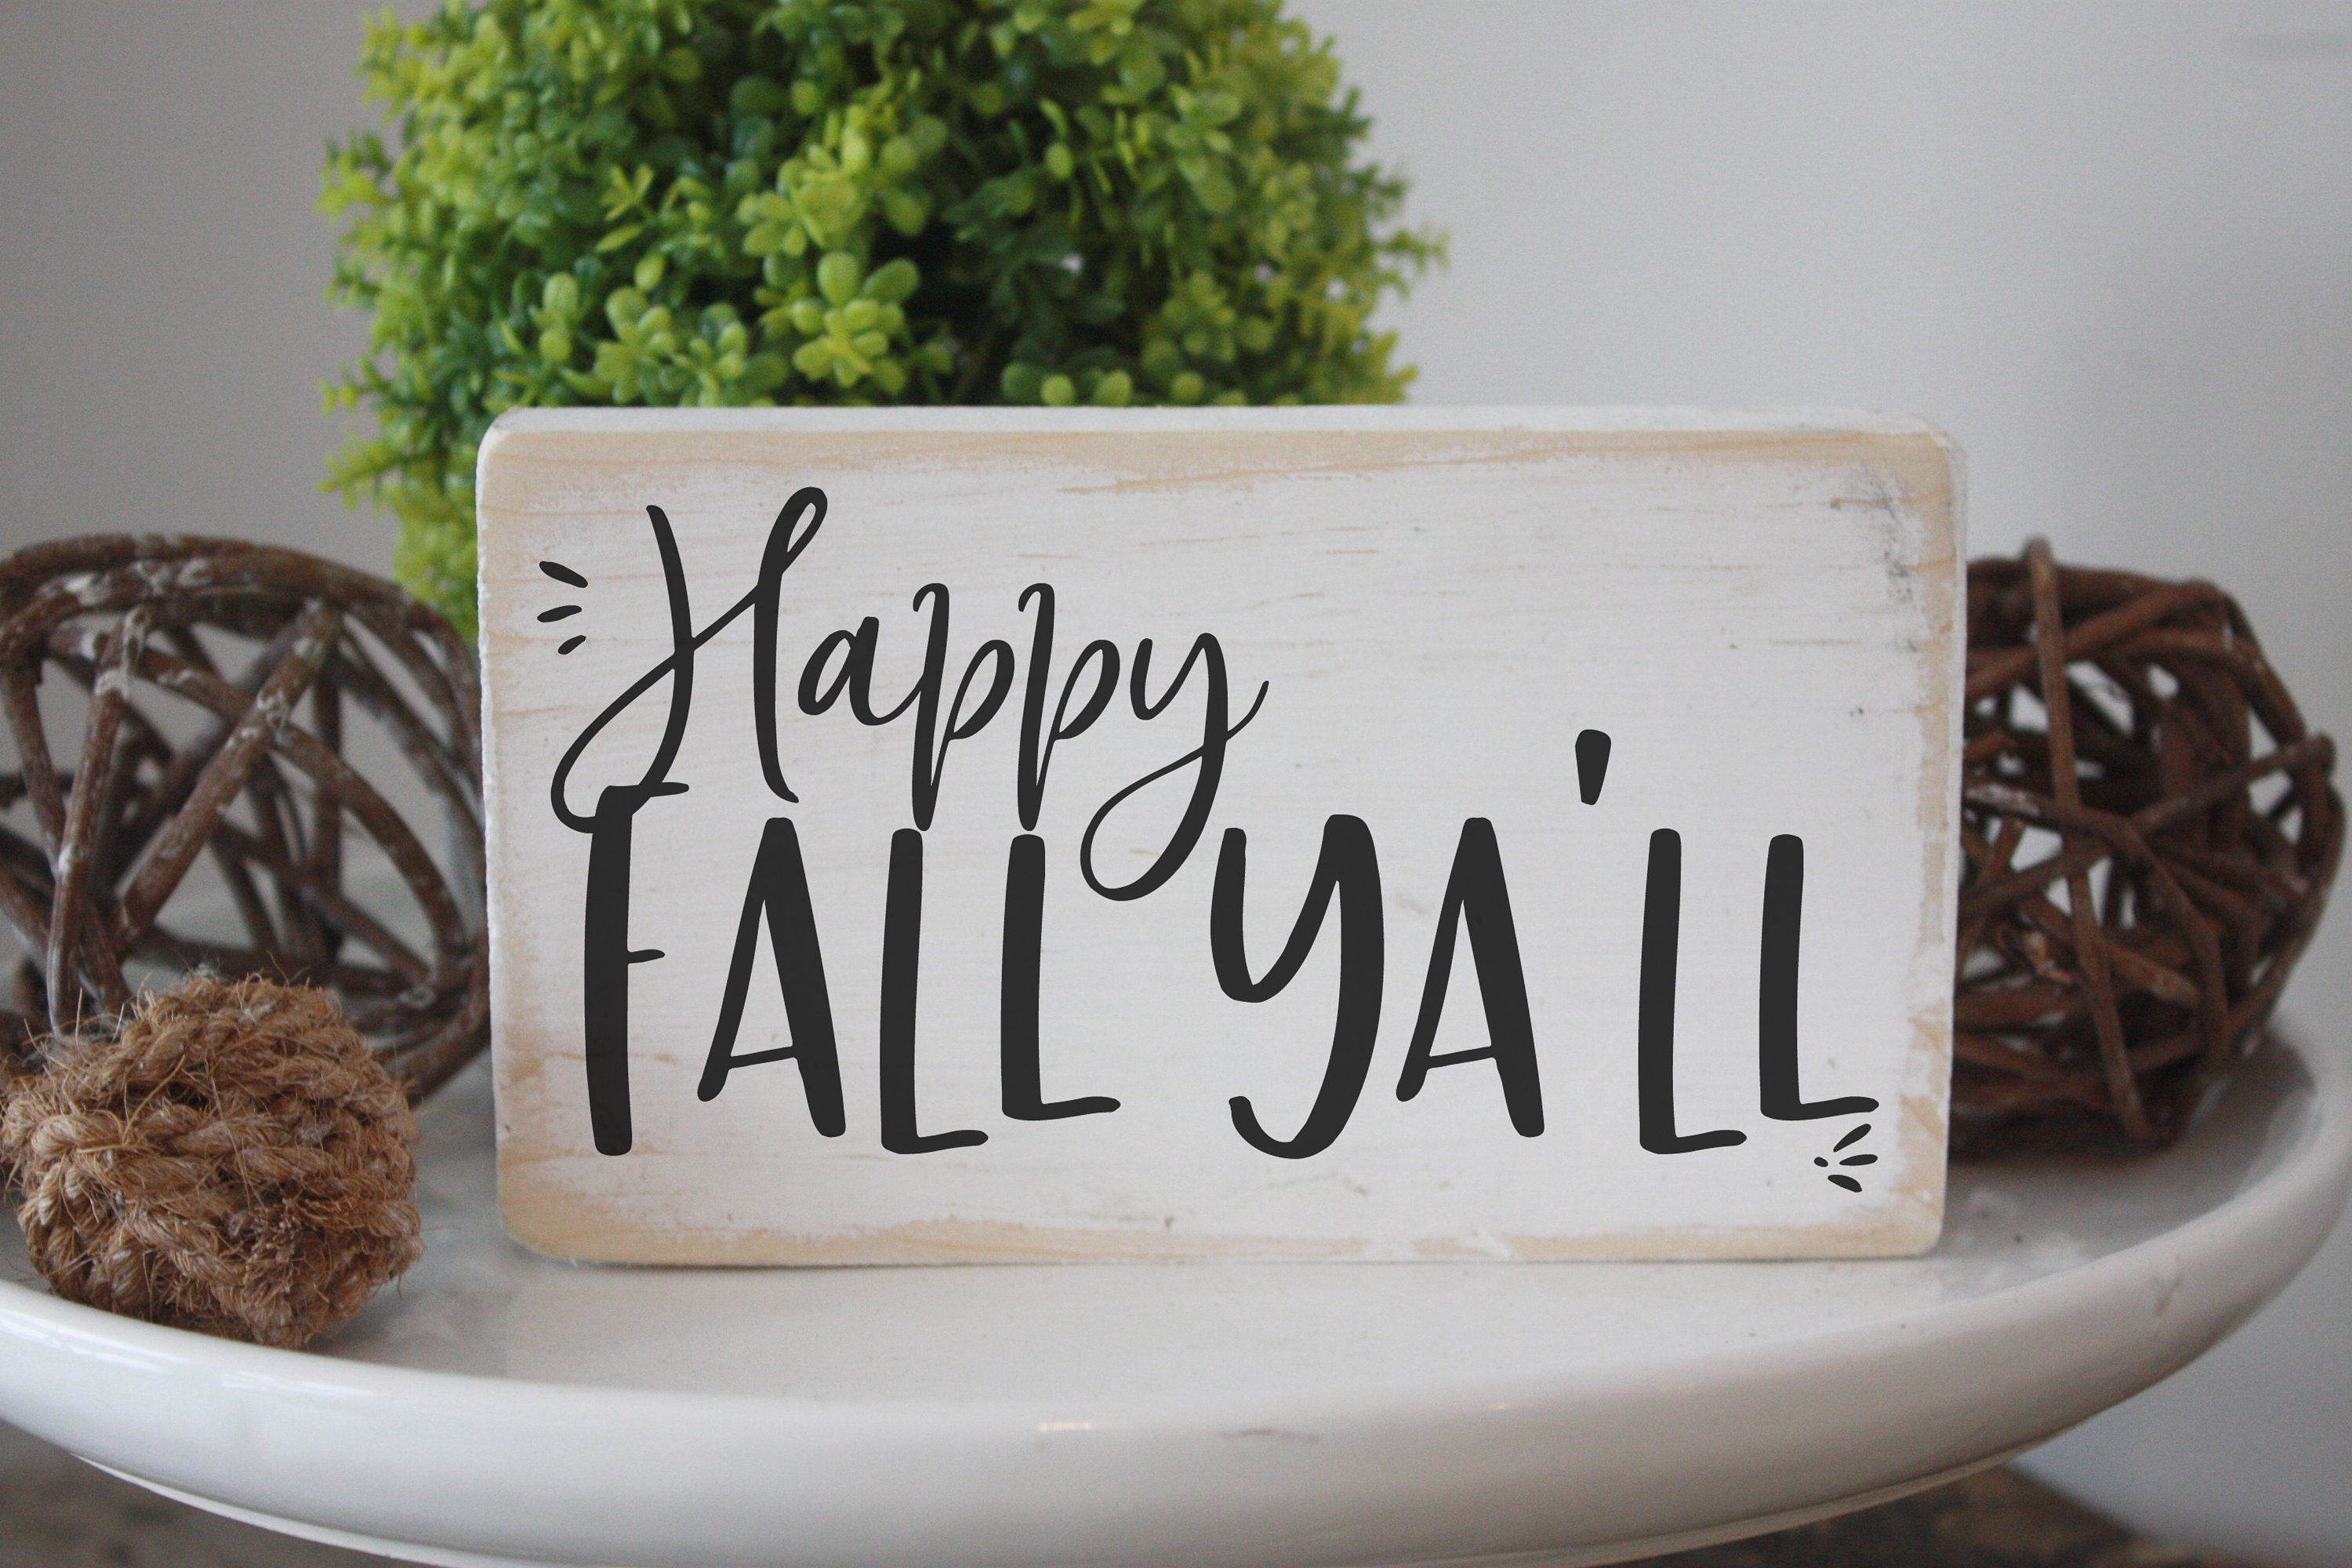 Happy Fall Ya Ll Mini Wood Sign Simple Halloween Decor Modern Farmhouse Decor Small Signs Home Decor Halloween Accent Piece